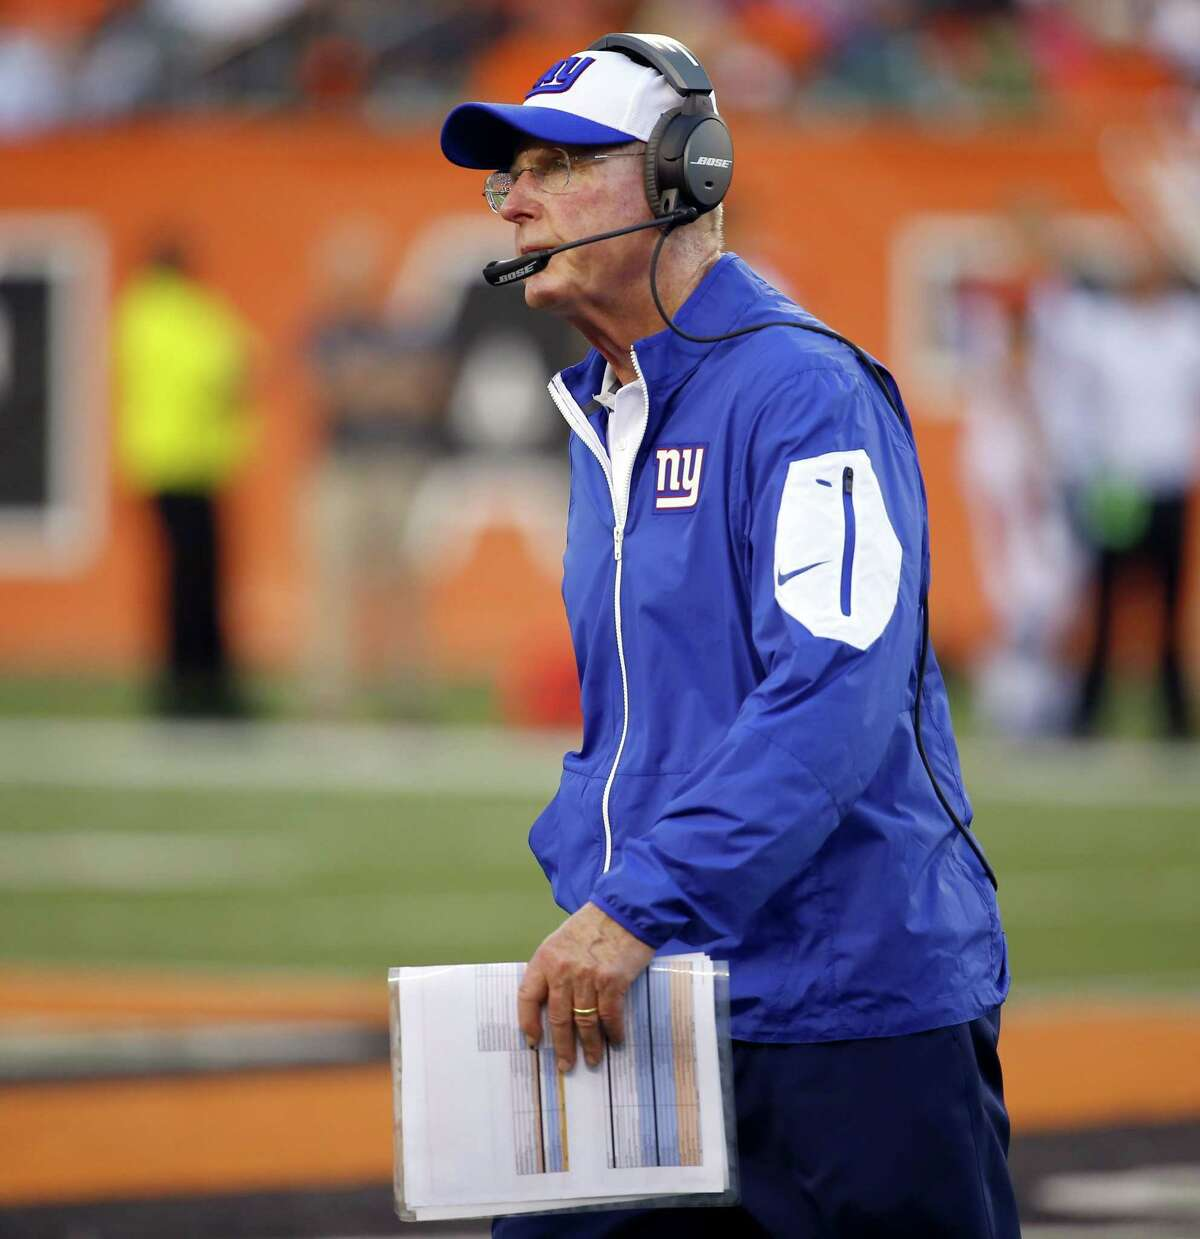 New York Giants head coach Tom Coughlin watches his team during a preseason game against the Bengals on Aug. 14 in Cincinnati.